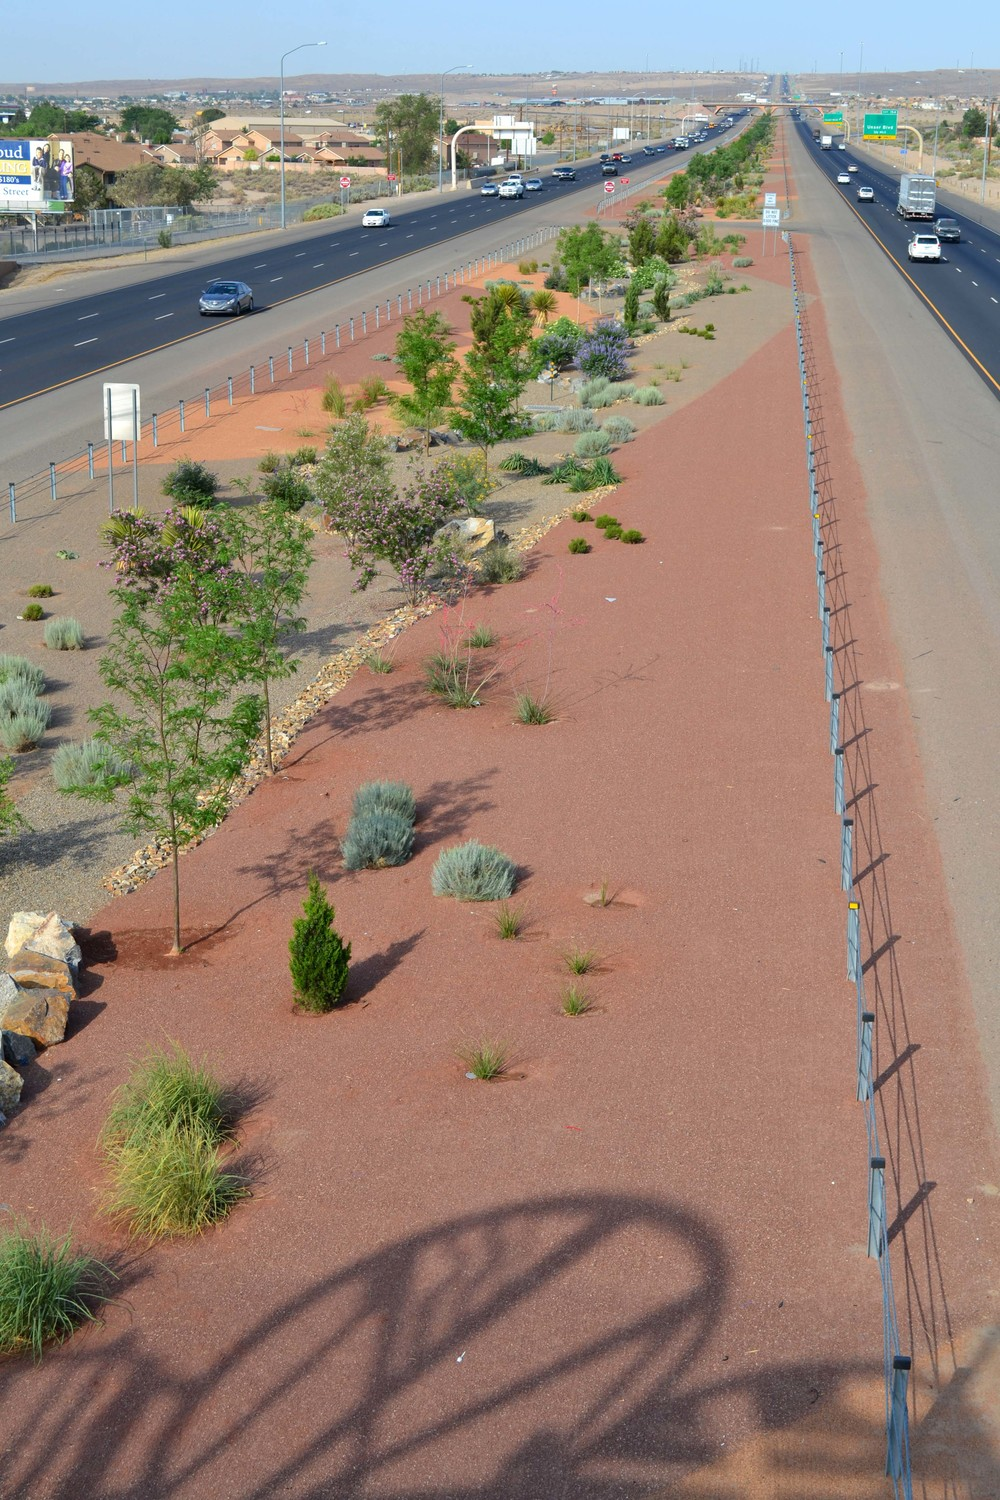 Art on the bridge above the highway casts an ornamental shadow